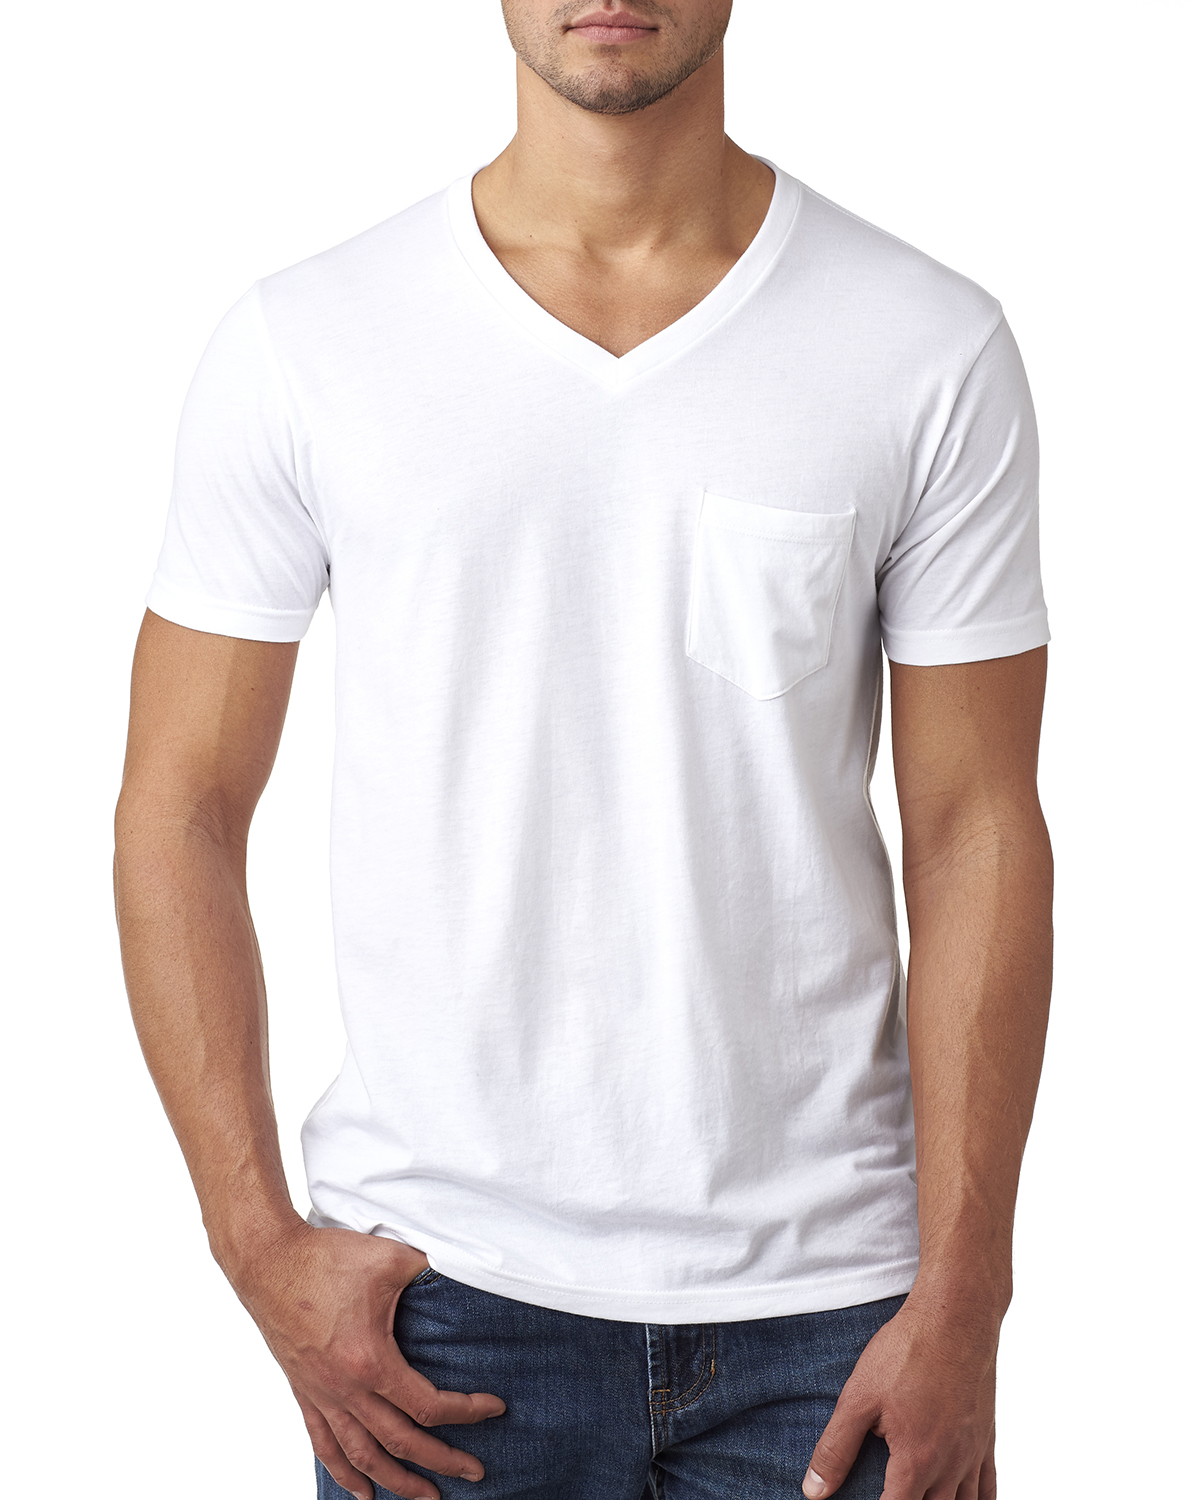 fbdf632792f8c0 Next Level Apparel 6245 - Men s CVC Tee with Pocket  5.06 - Men s T ...